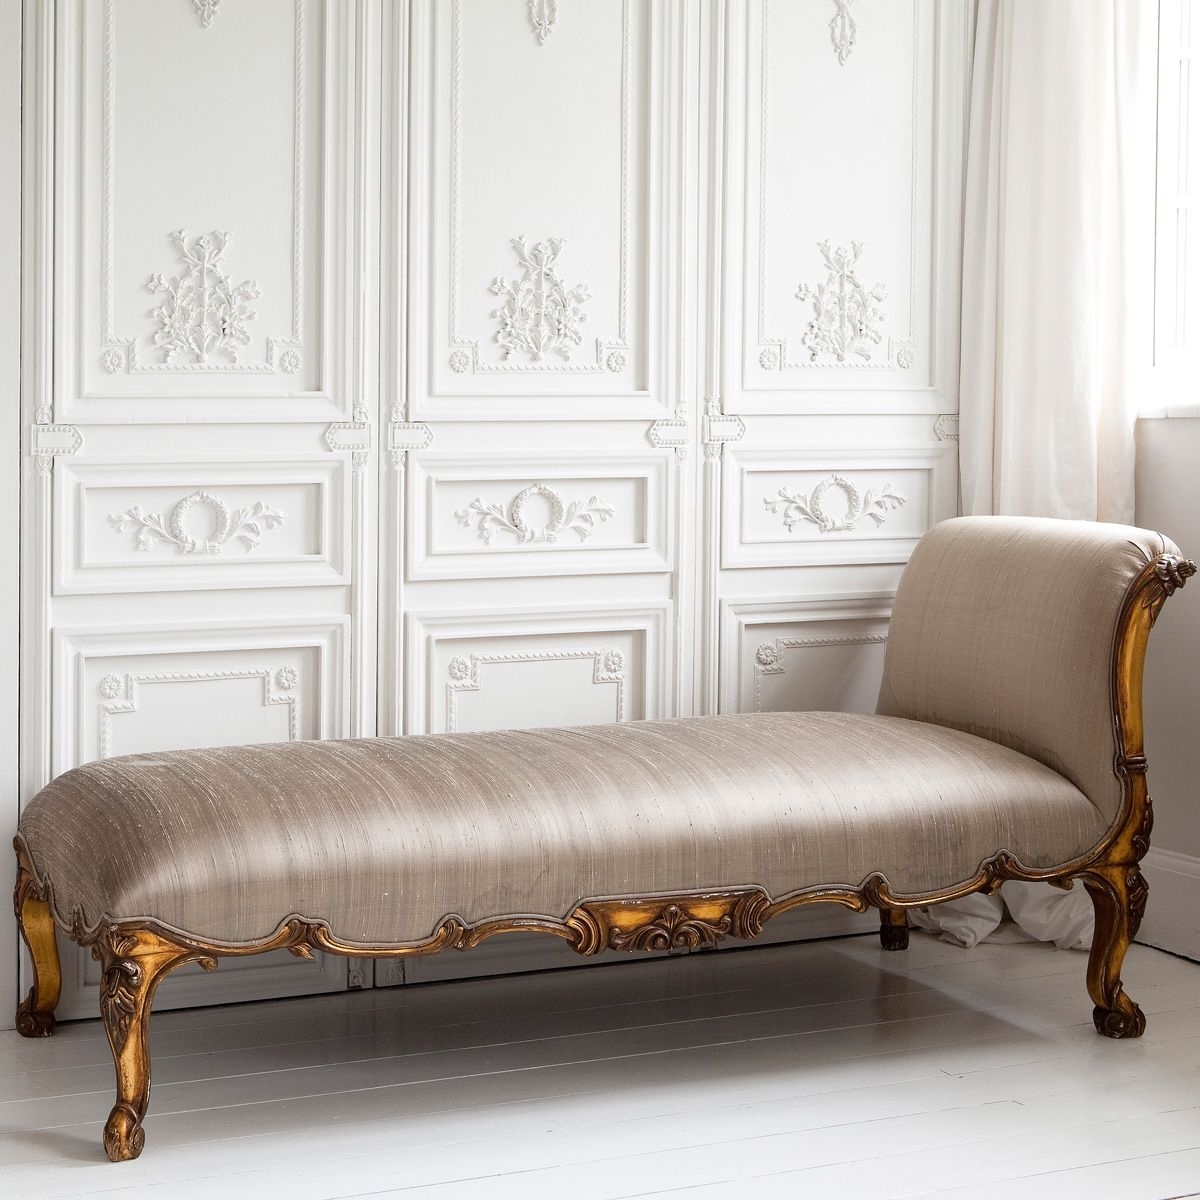 Most Popular Gold Chaise Lounge Chairs Within Versailles Gold Chaise Loungethe French Bedroom Company (View 10 of 15)